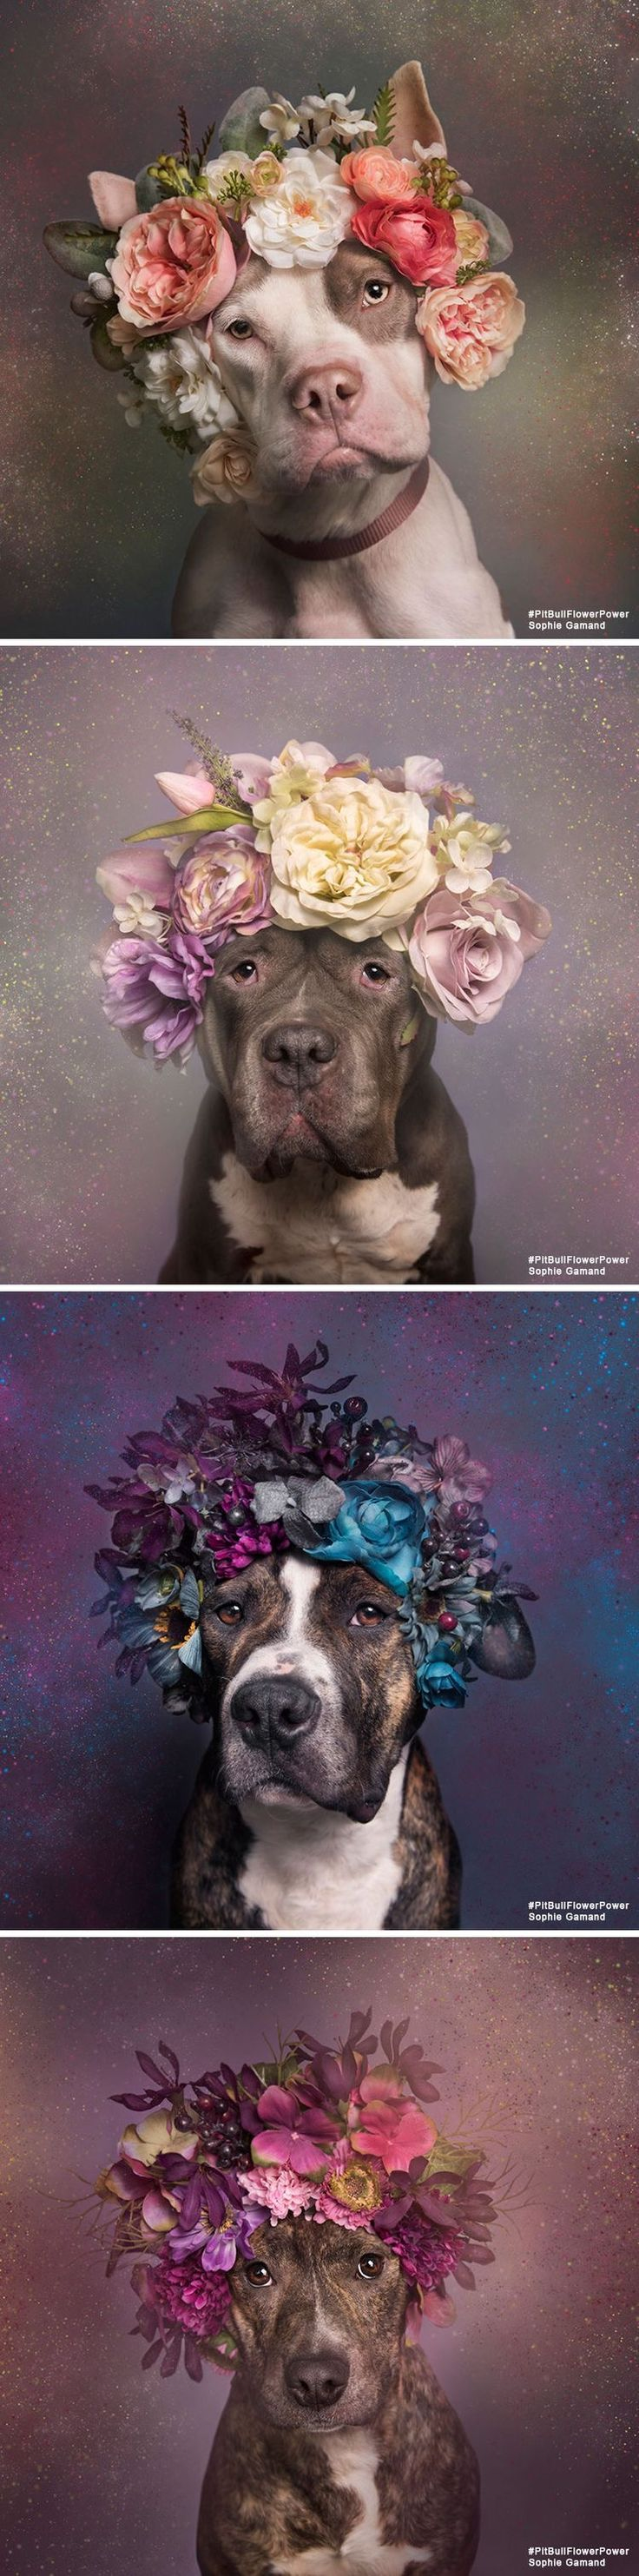 *sigh* would love to do this to nissie but she'd try to eat the flowers off herself